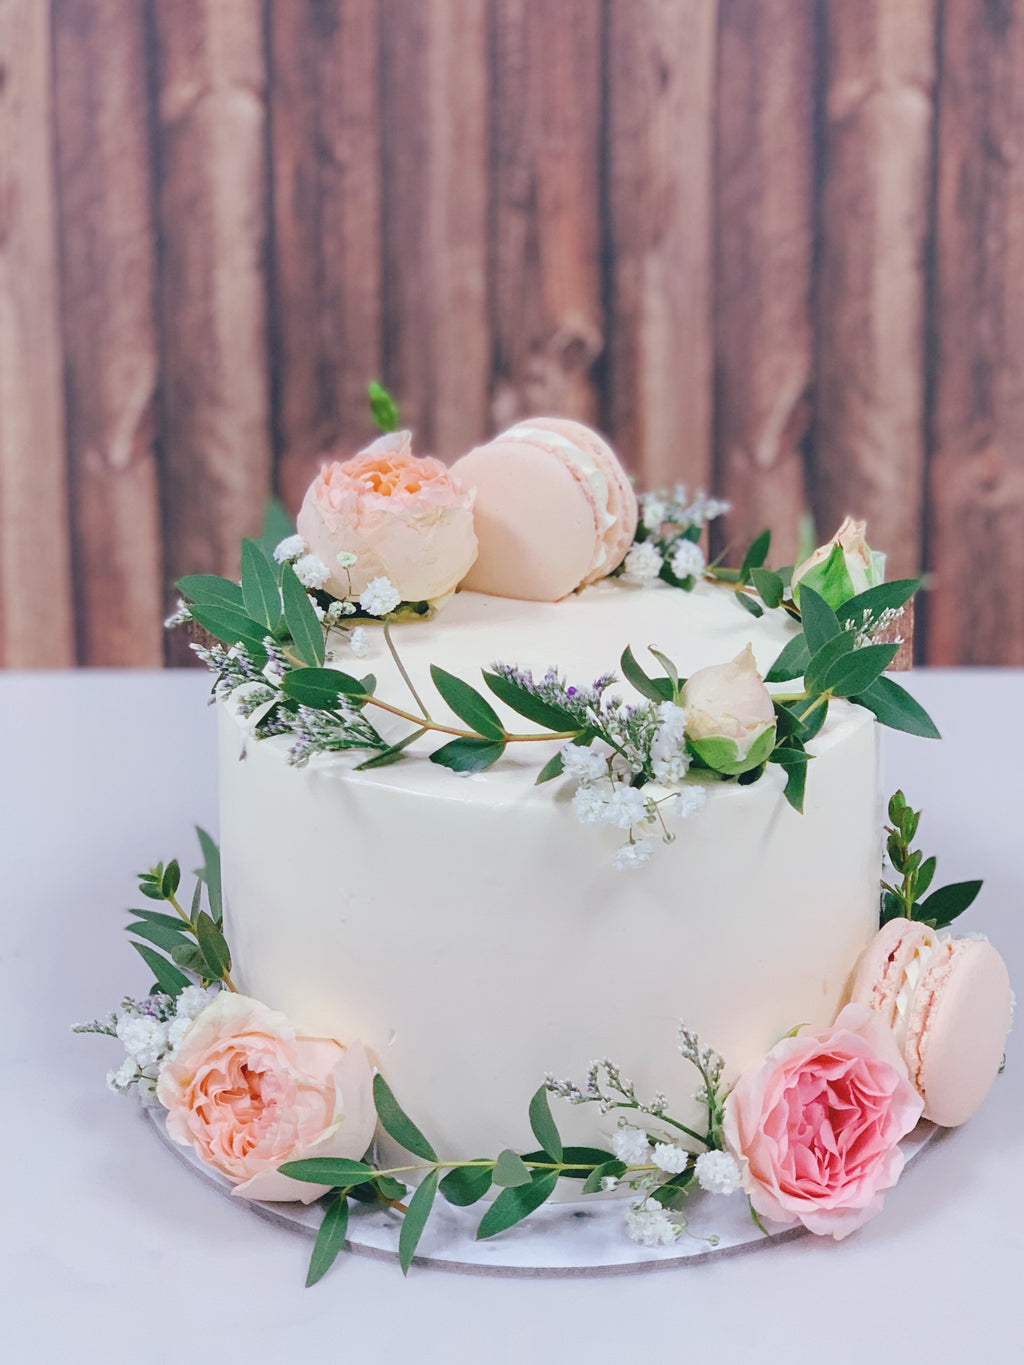 Blush Florals with Macarons Wreath Cake